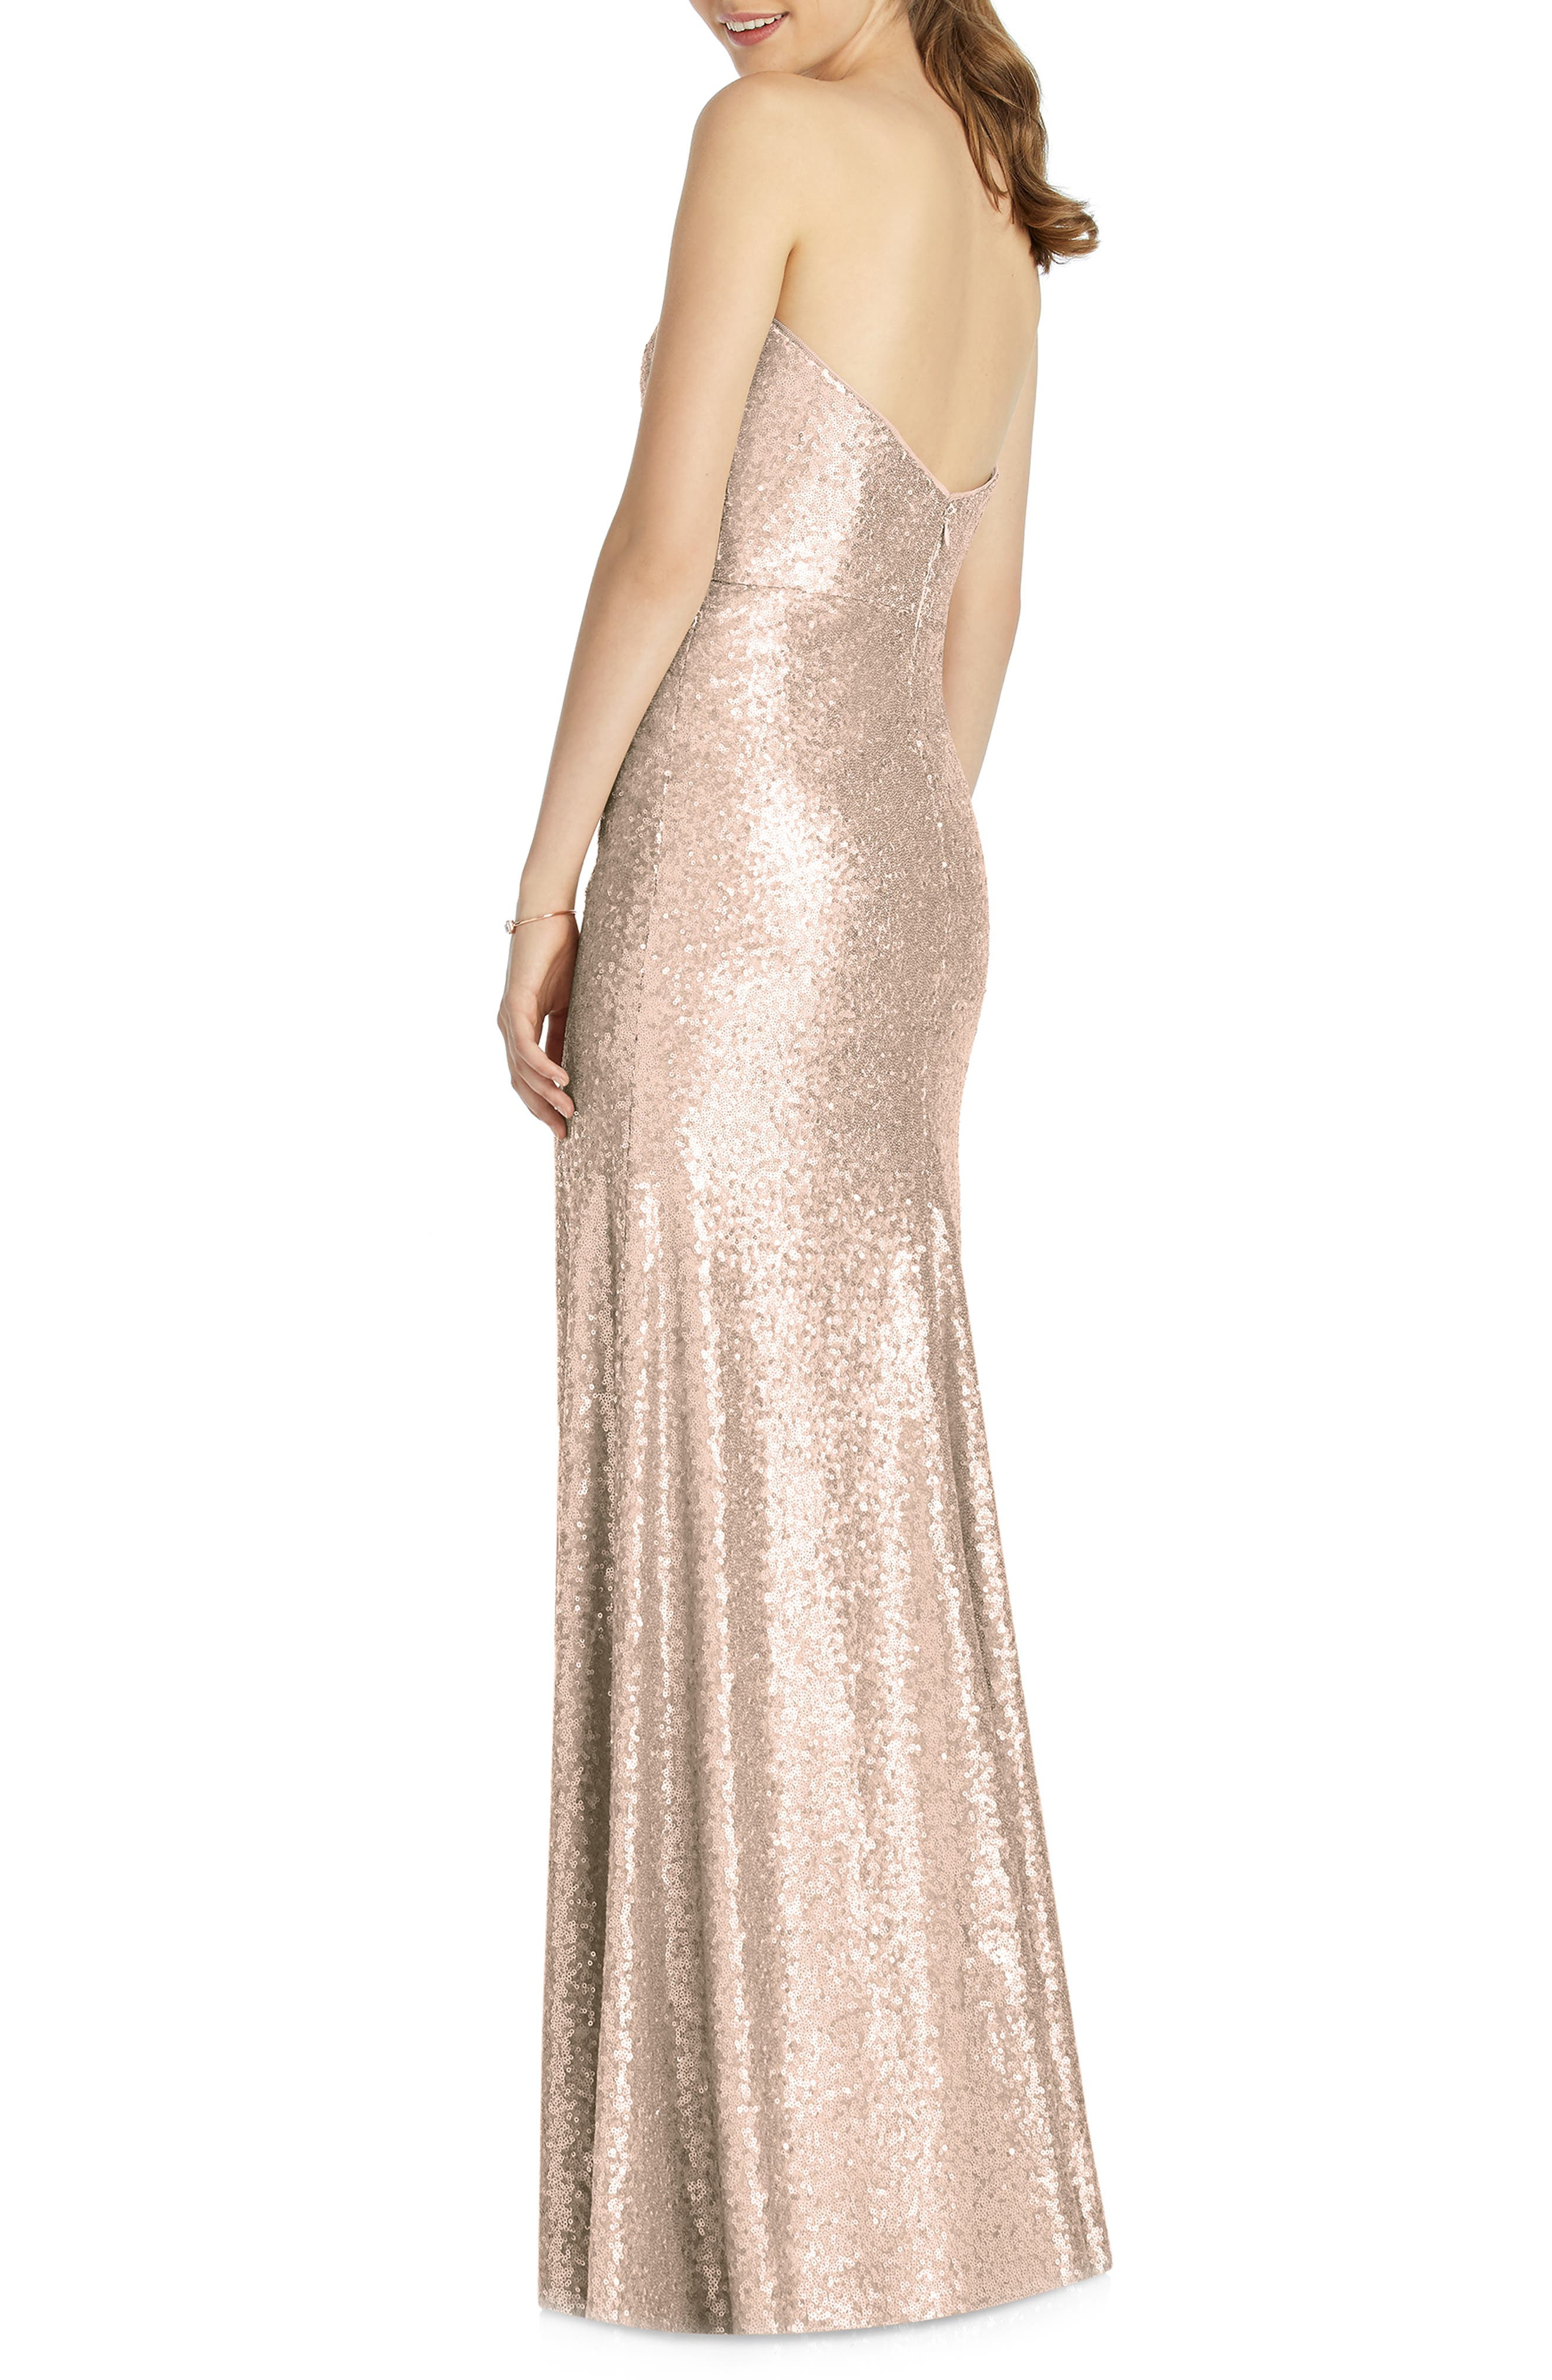 DESSY COLLECTION, Elle Strapless Sequin Trumpet Gown, Alternate thumbnail 2, color, ROSE GOLD